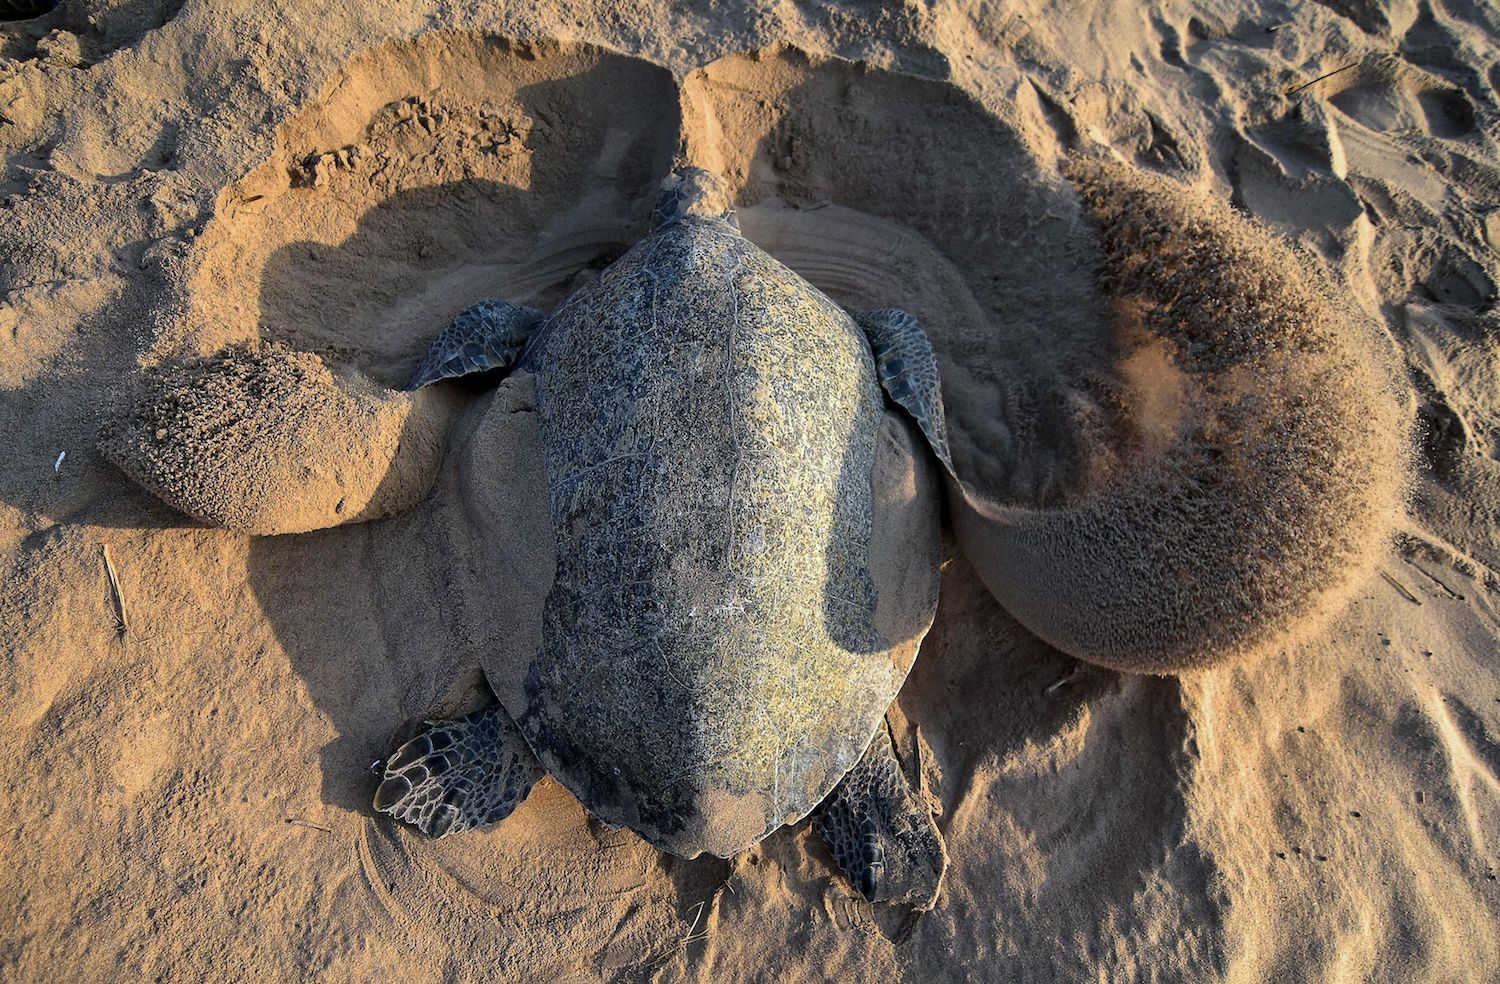 An Olive Ridley sea turtle digs a hole to lay eggs on Rushikulya Beach, some 140 kilometres (88 miles) southwest of Bhubaneswar in India's eastern Odisha state, on Feb. 23. (ASIT KUMAR/AFP/Getty Images)